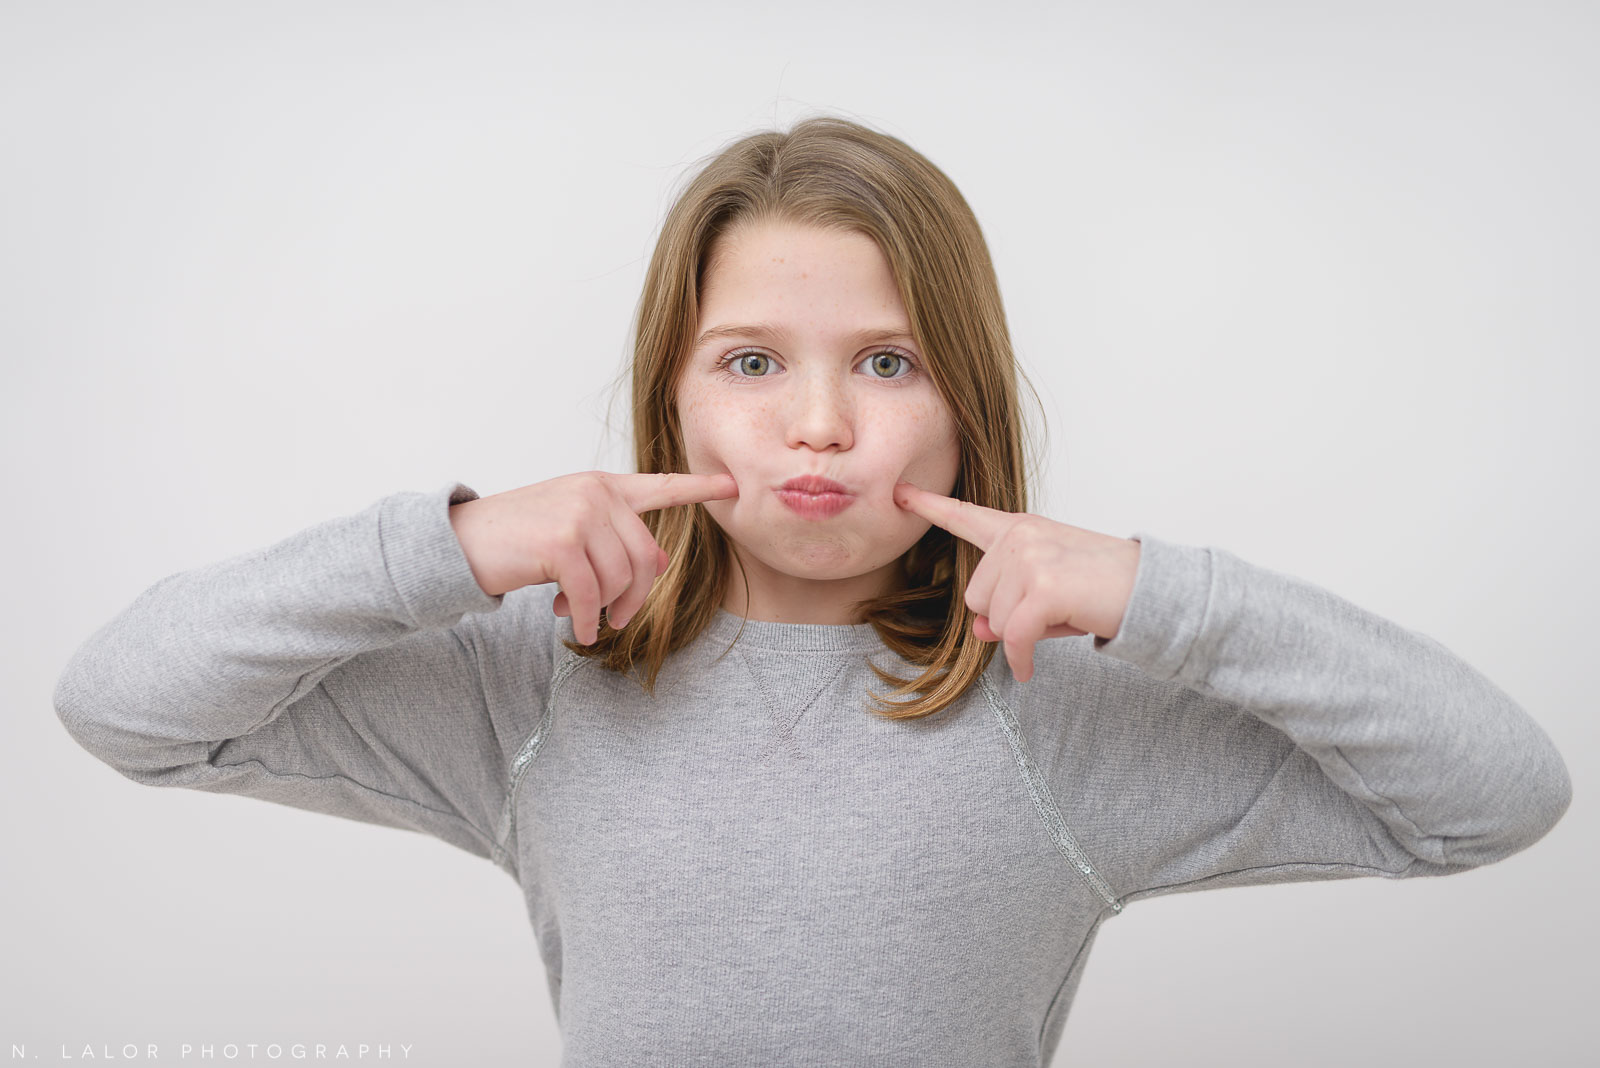 Funny face image of an 8-year old girl. Studio portrait by N. Lalor Photography in Greenwich Connecticut.